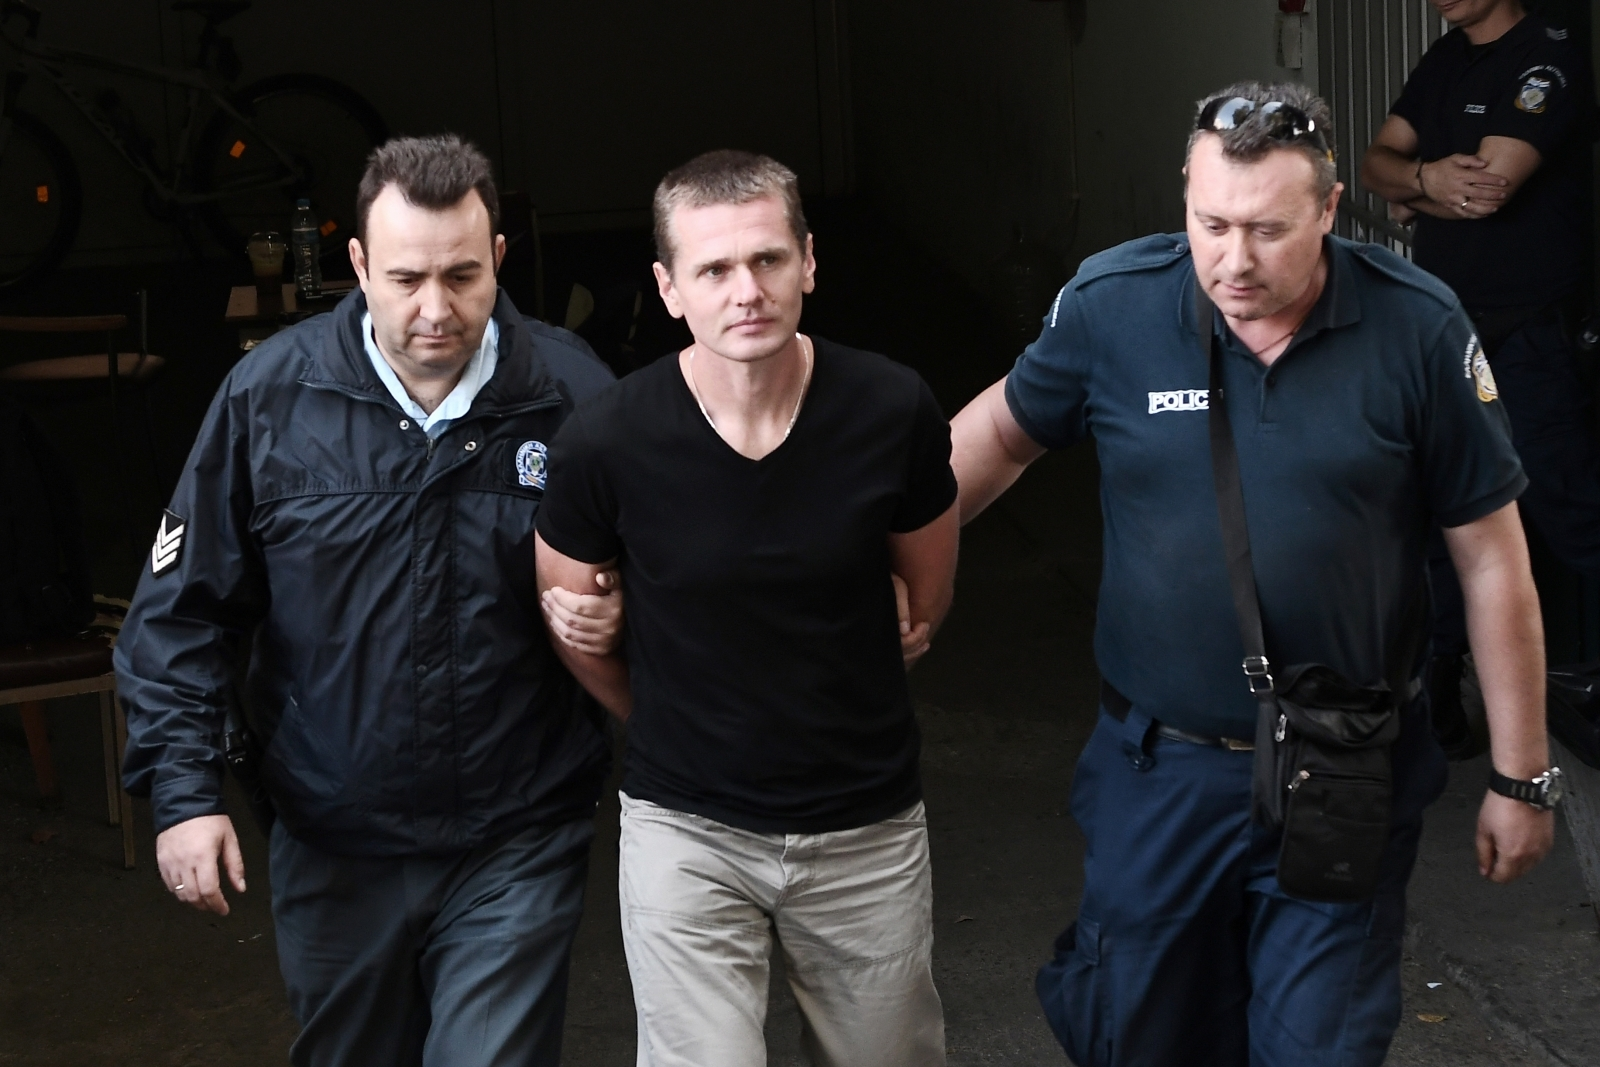 Russian suspected of $4bn Bitcoin laundering op to be extradited to US